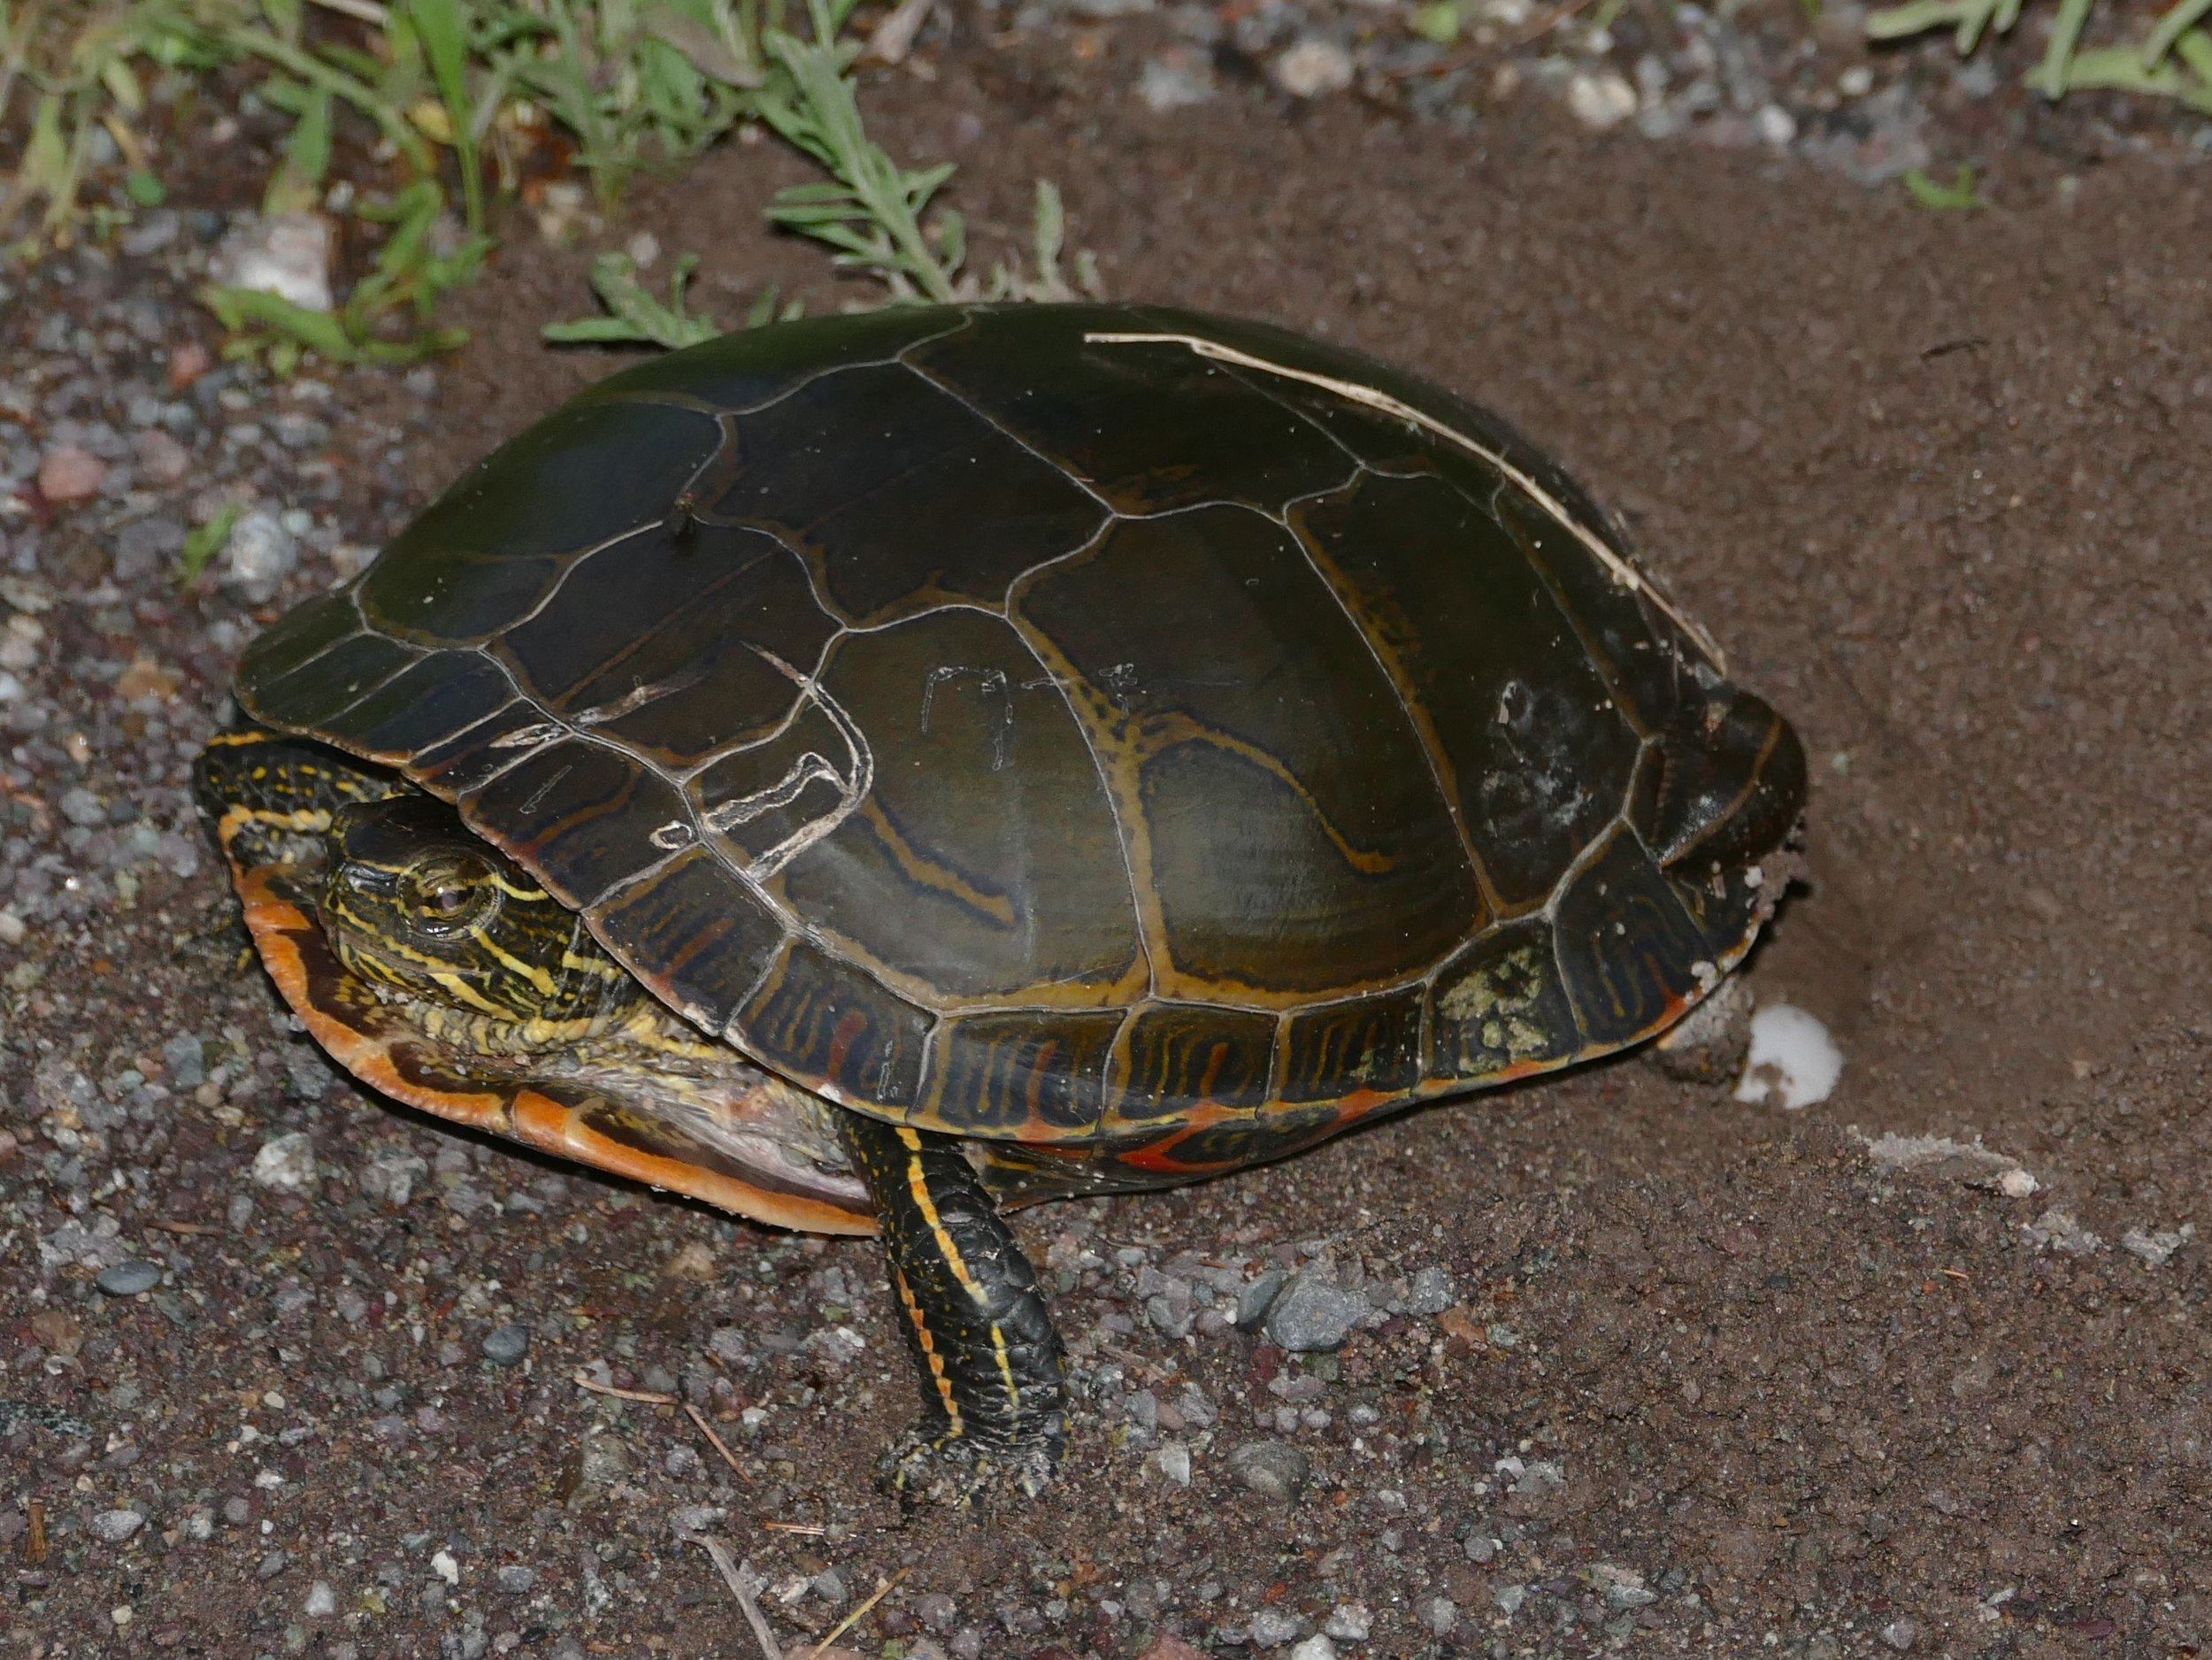 I saw several species of turtles nesting, I took this photo quickly so I could leave her in peace and she could continue to lay her eggs.